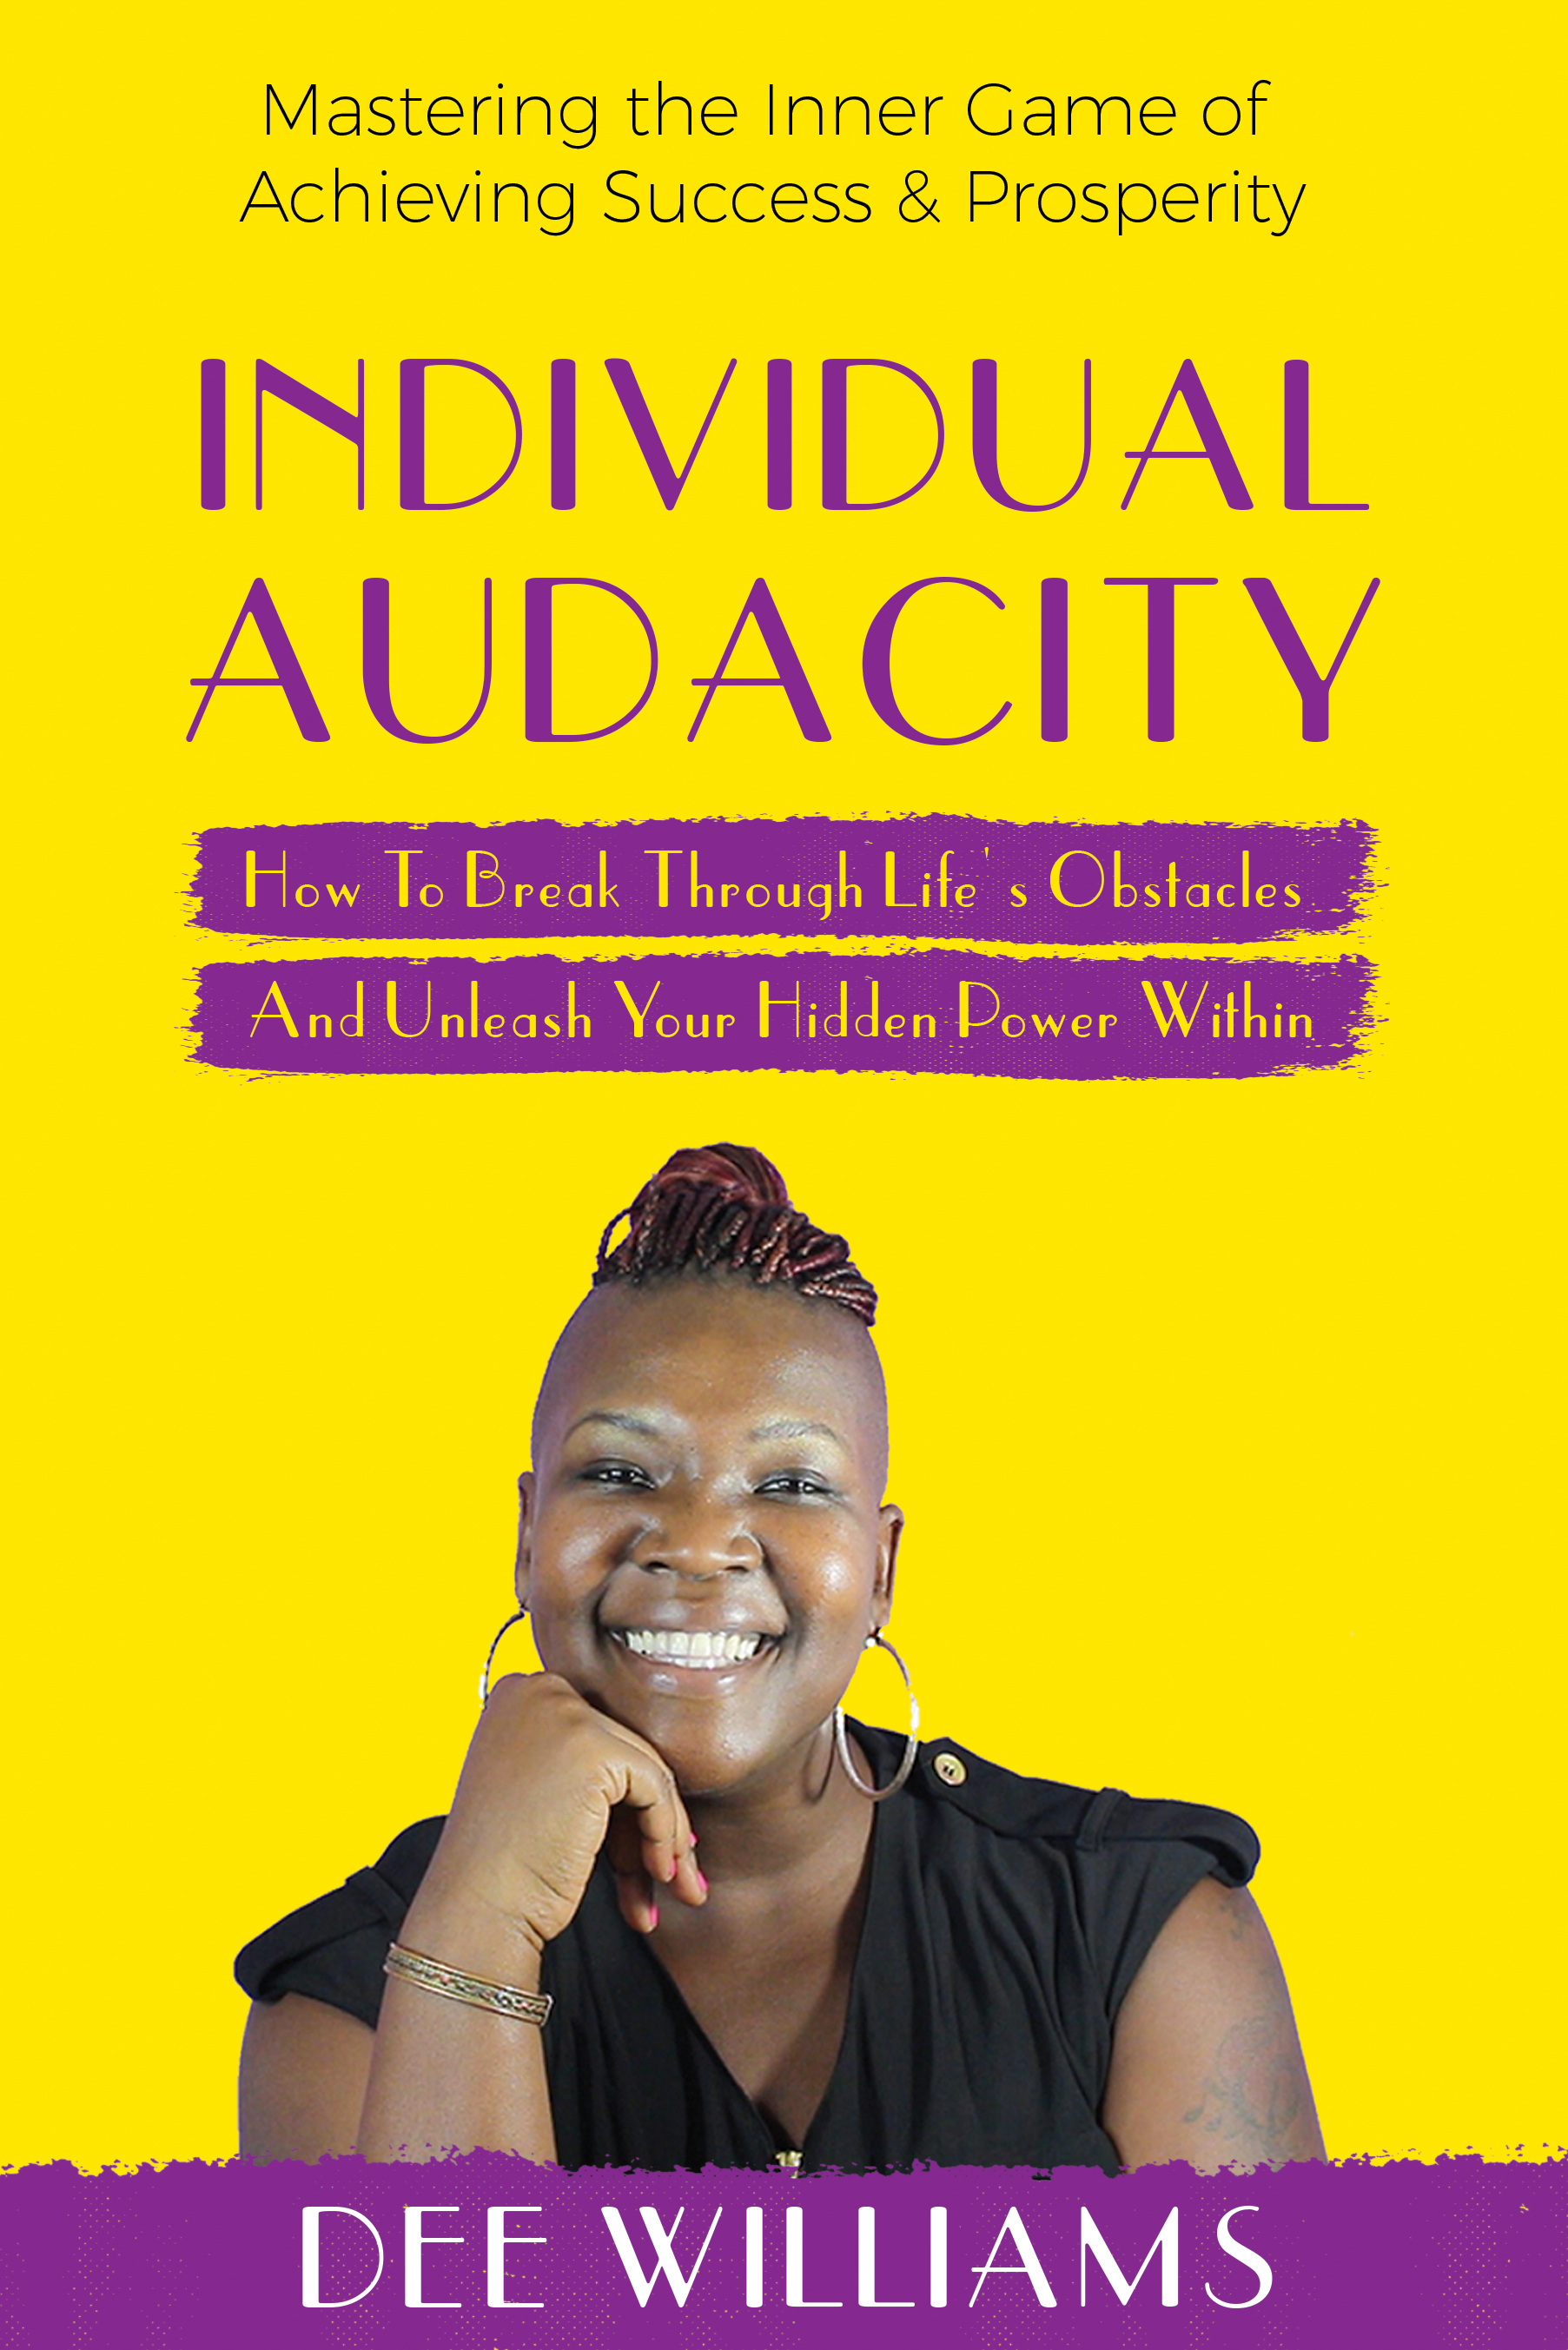 Individual Audacity is the title of my book...I need help with the design please